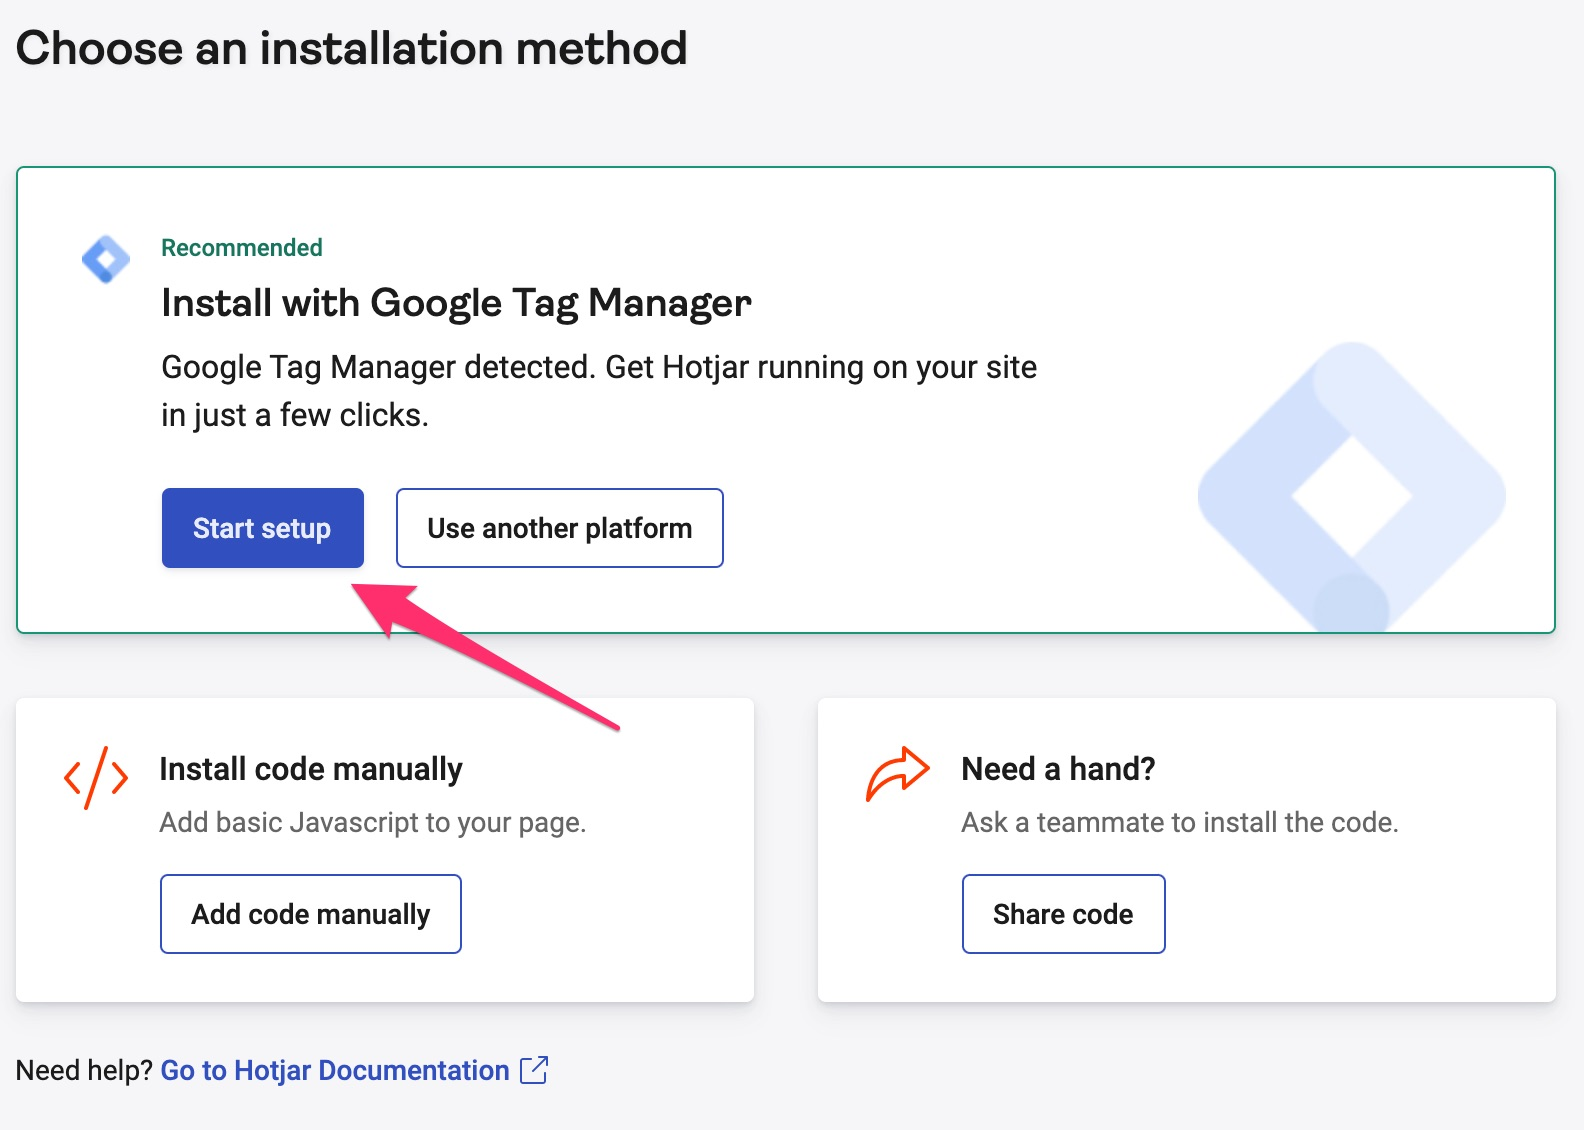 The Start setup button to begin installation with Google Tag Manager